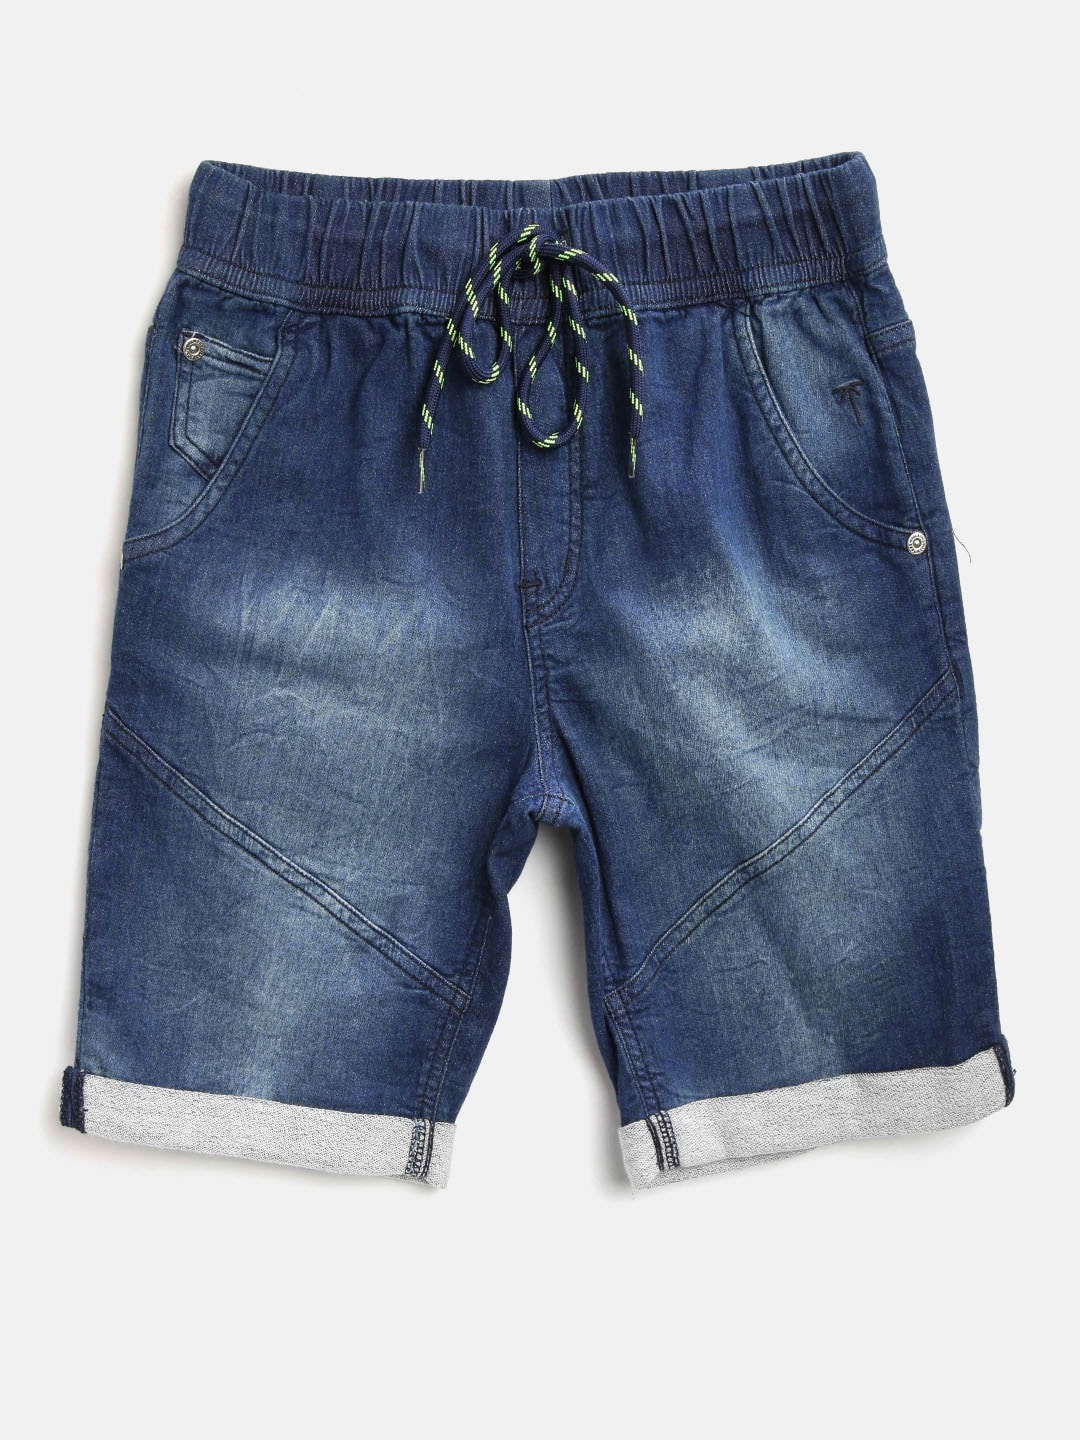 360a2f5ef860 Boys Shorts - Buy Shorts for Boys Online in India